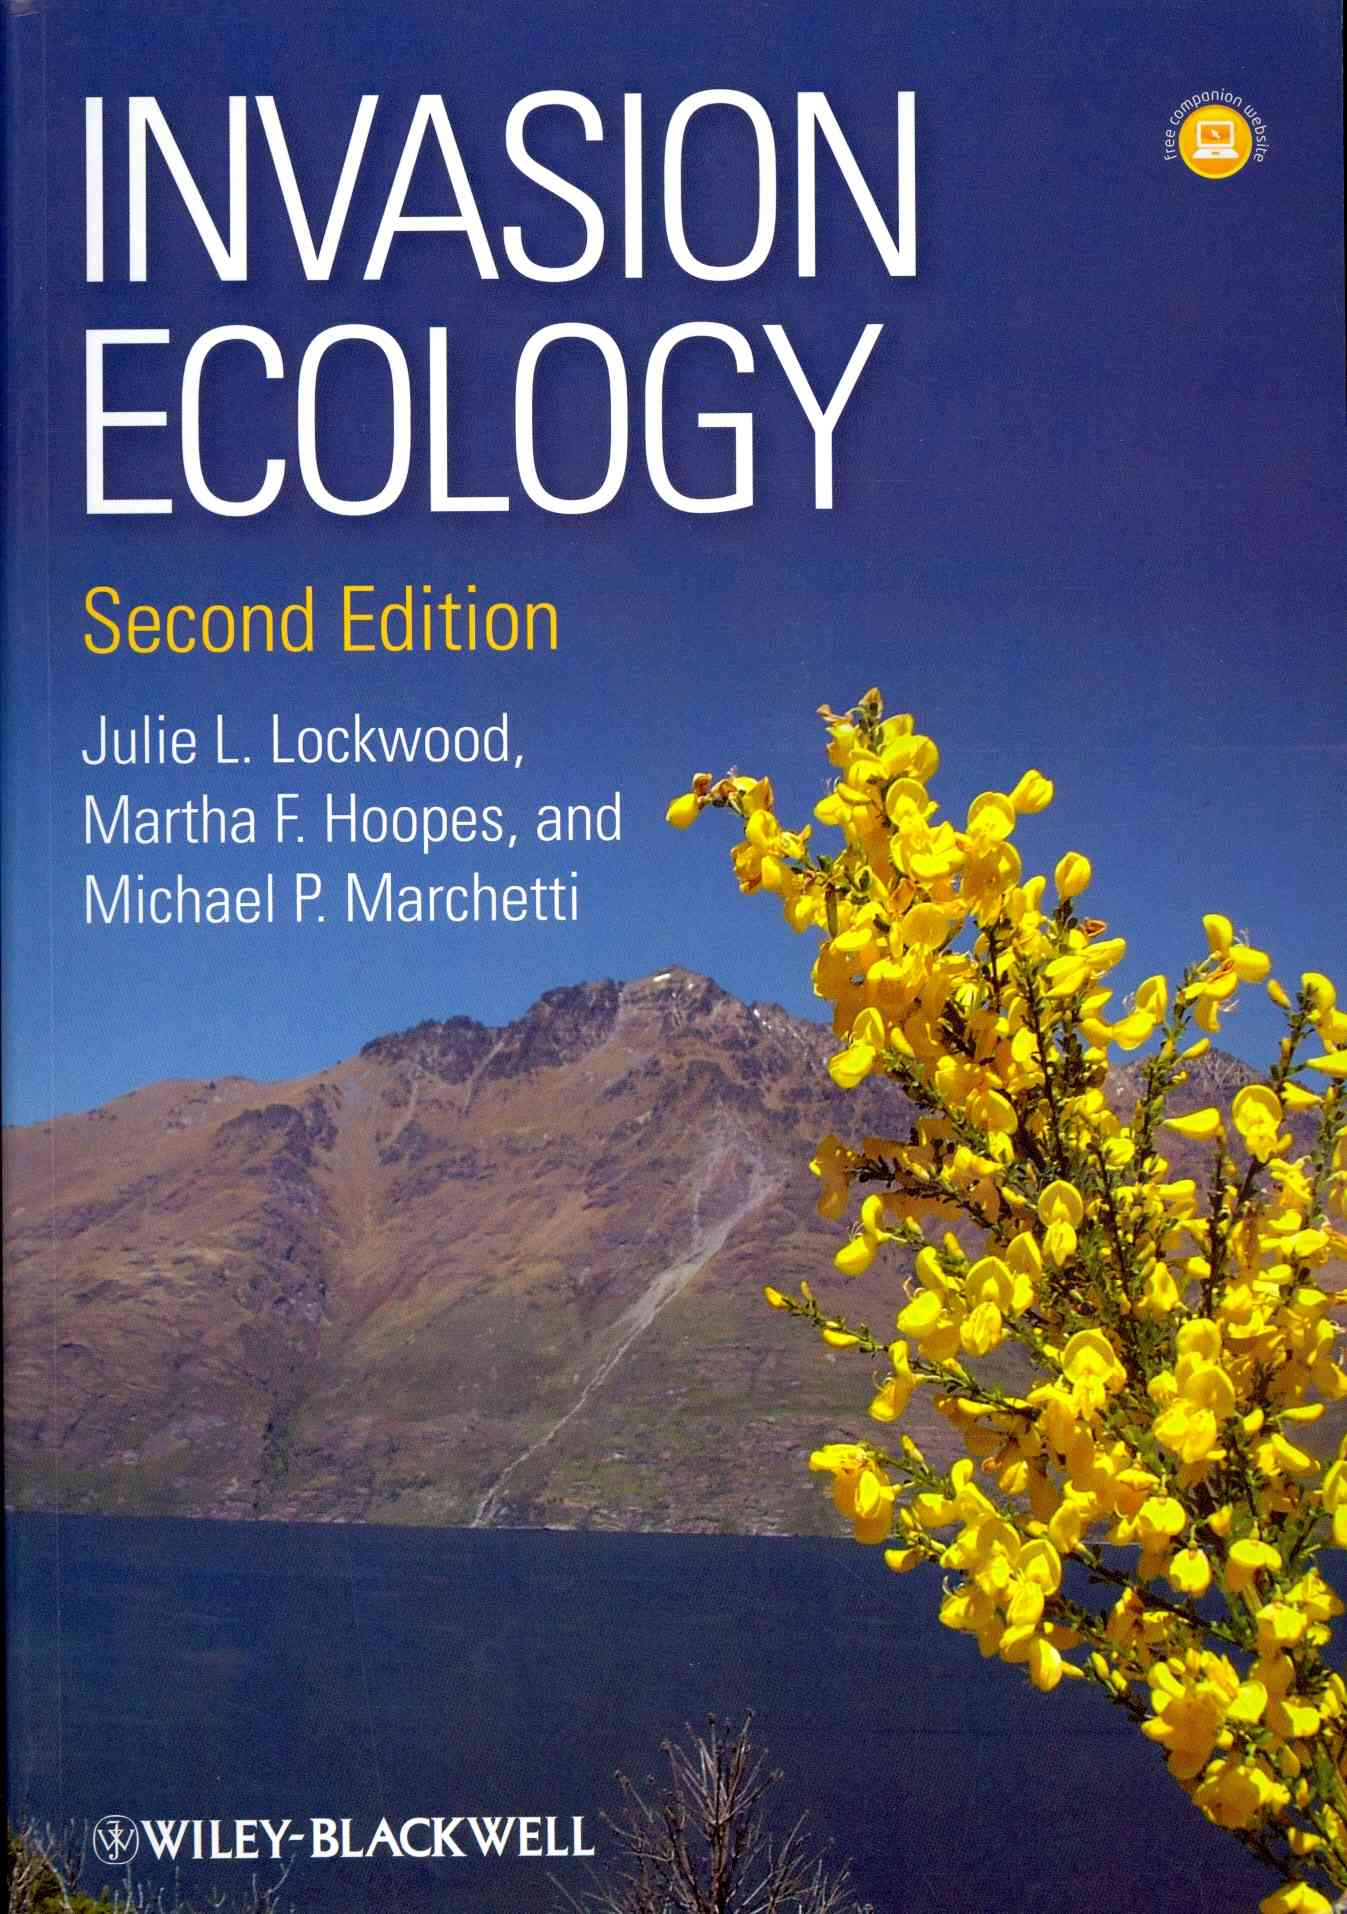 Invasion Ecology By Lockwood, Julie (EDT)/ Hoopes, Martha (EDT)/ Marchetti, Michael (EDT)